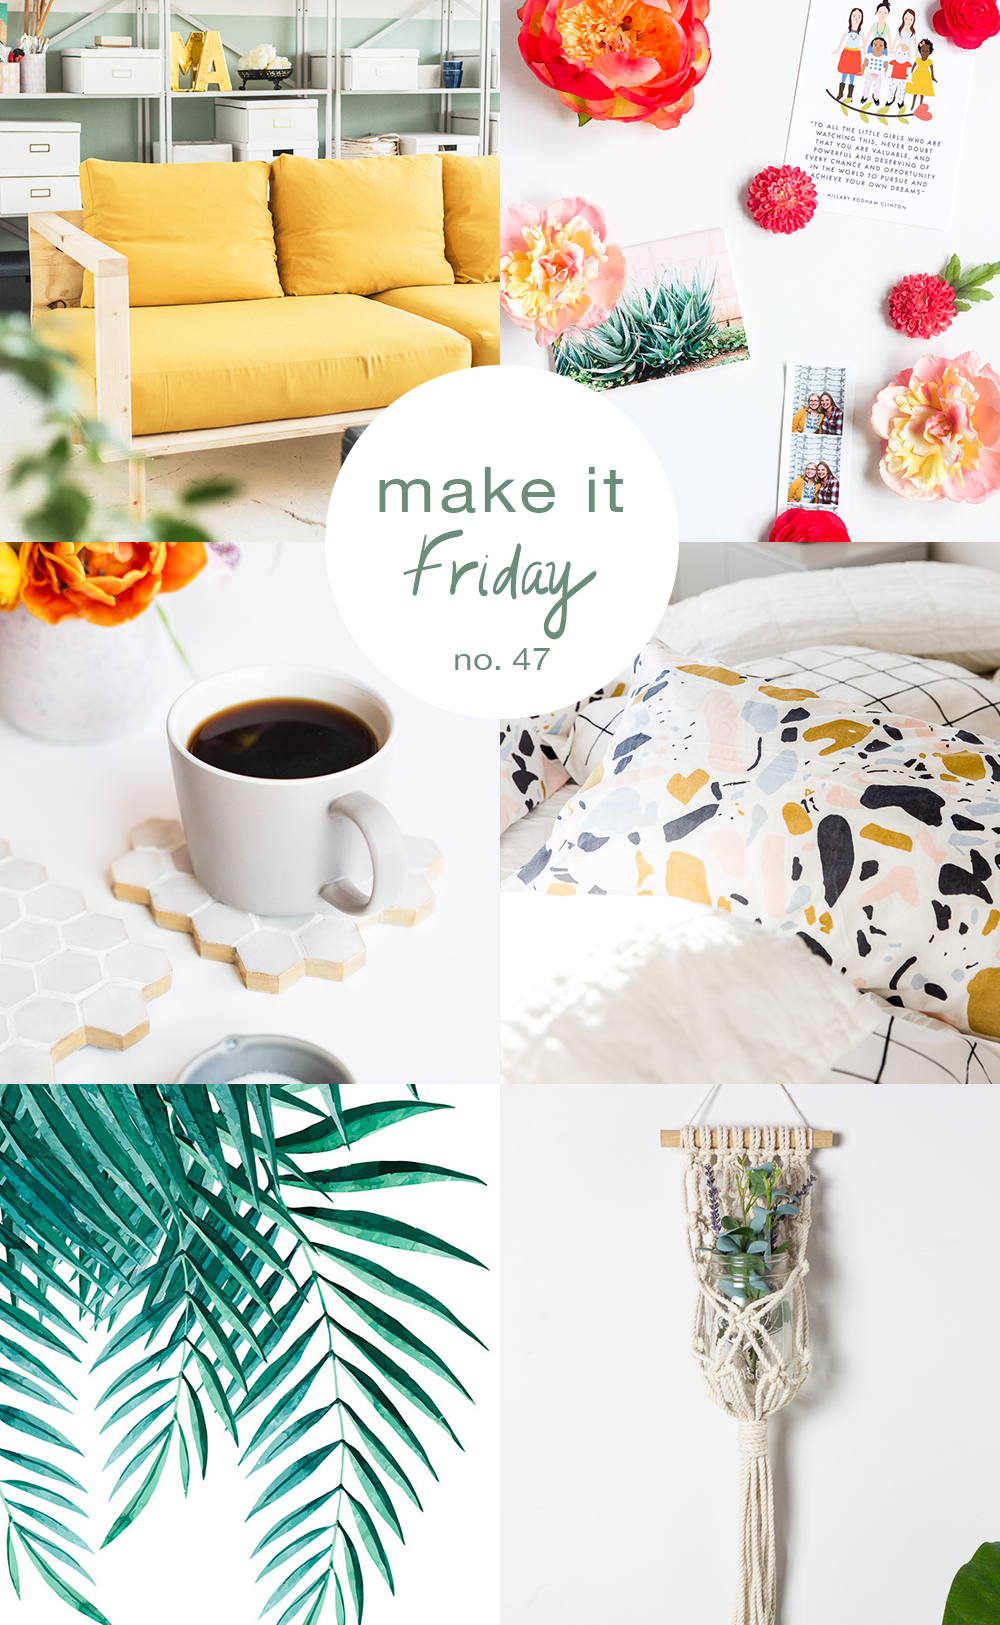 Make it Friday colorful DIY roundup via Idle Hands Awake